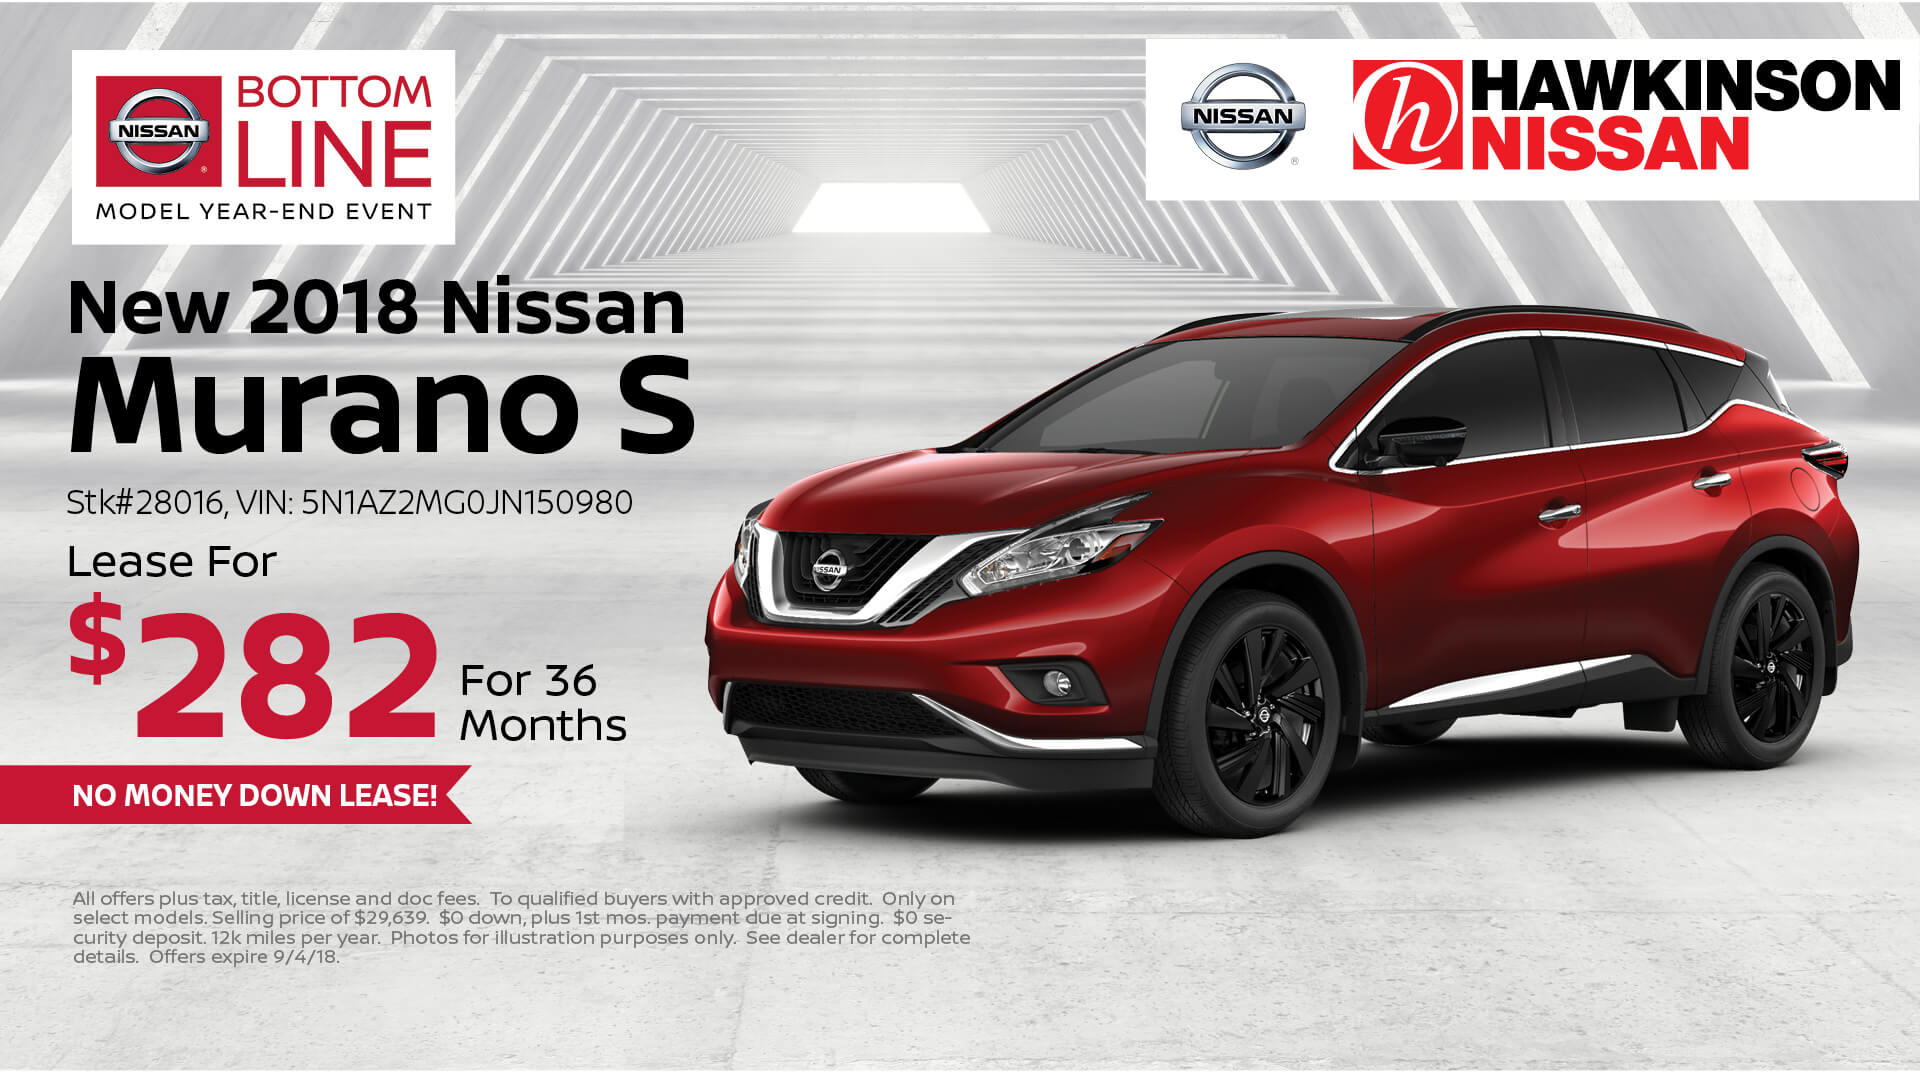 2018 Nissan Murano Special Offer